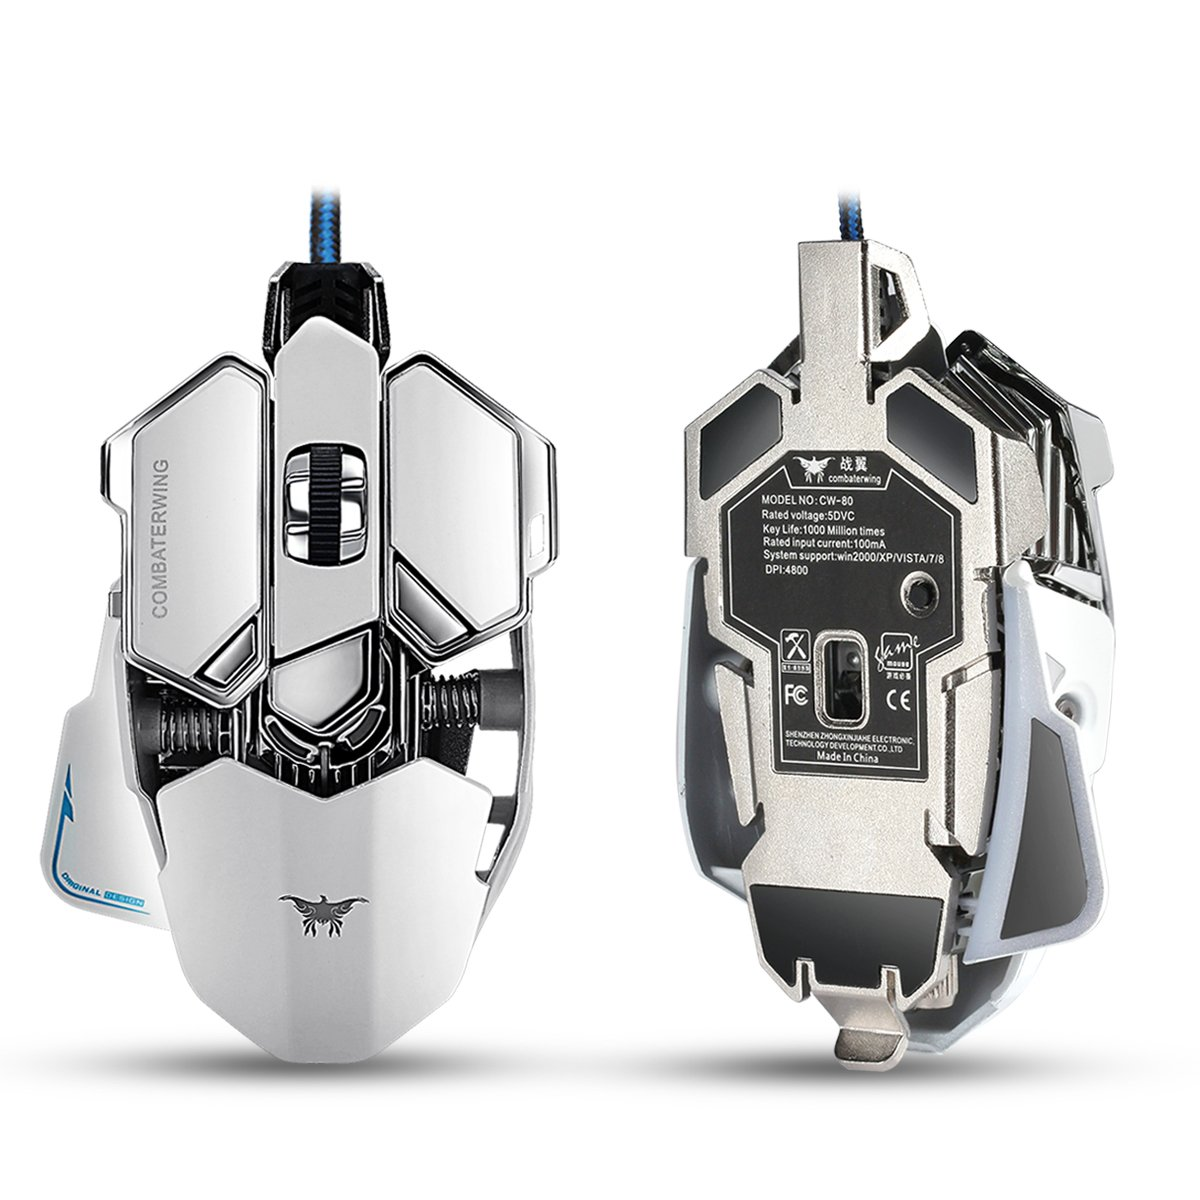 Combaterwing Gaming Mouse 4800 Dpi Aluminum Base 10 Wiring Diagram Optical Free Picture Along With Buttons Rgb Led Professional Programmable Usb Wired Mice For Pc Laptops Computer